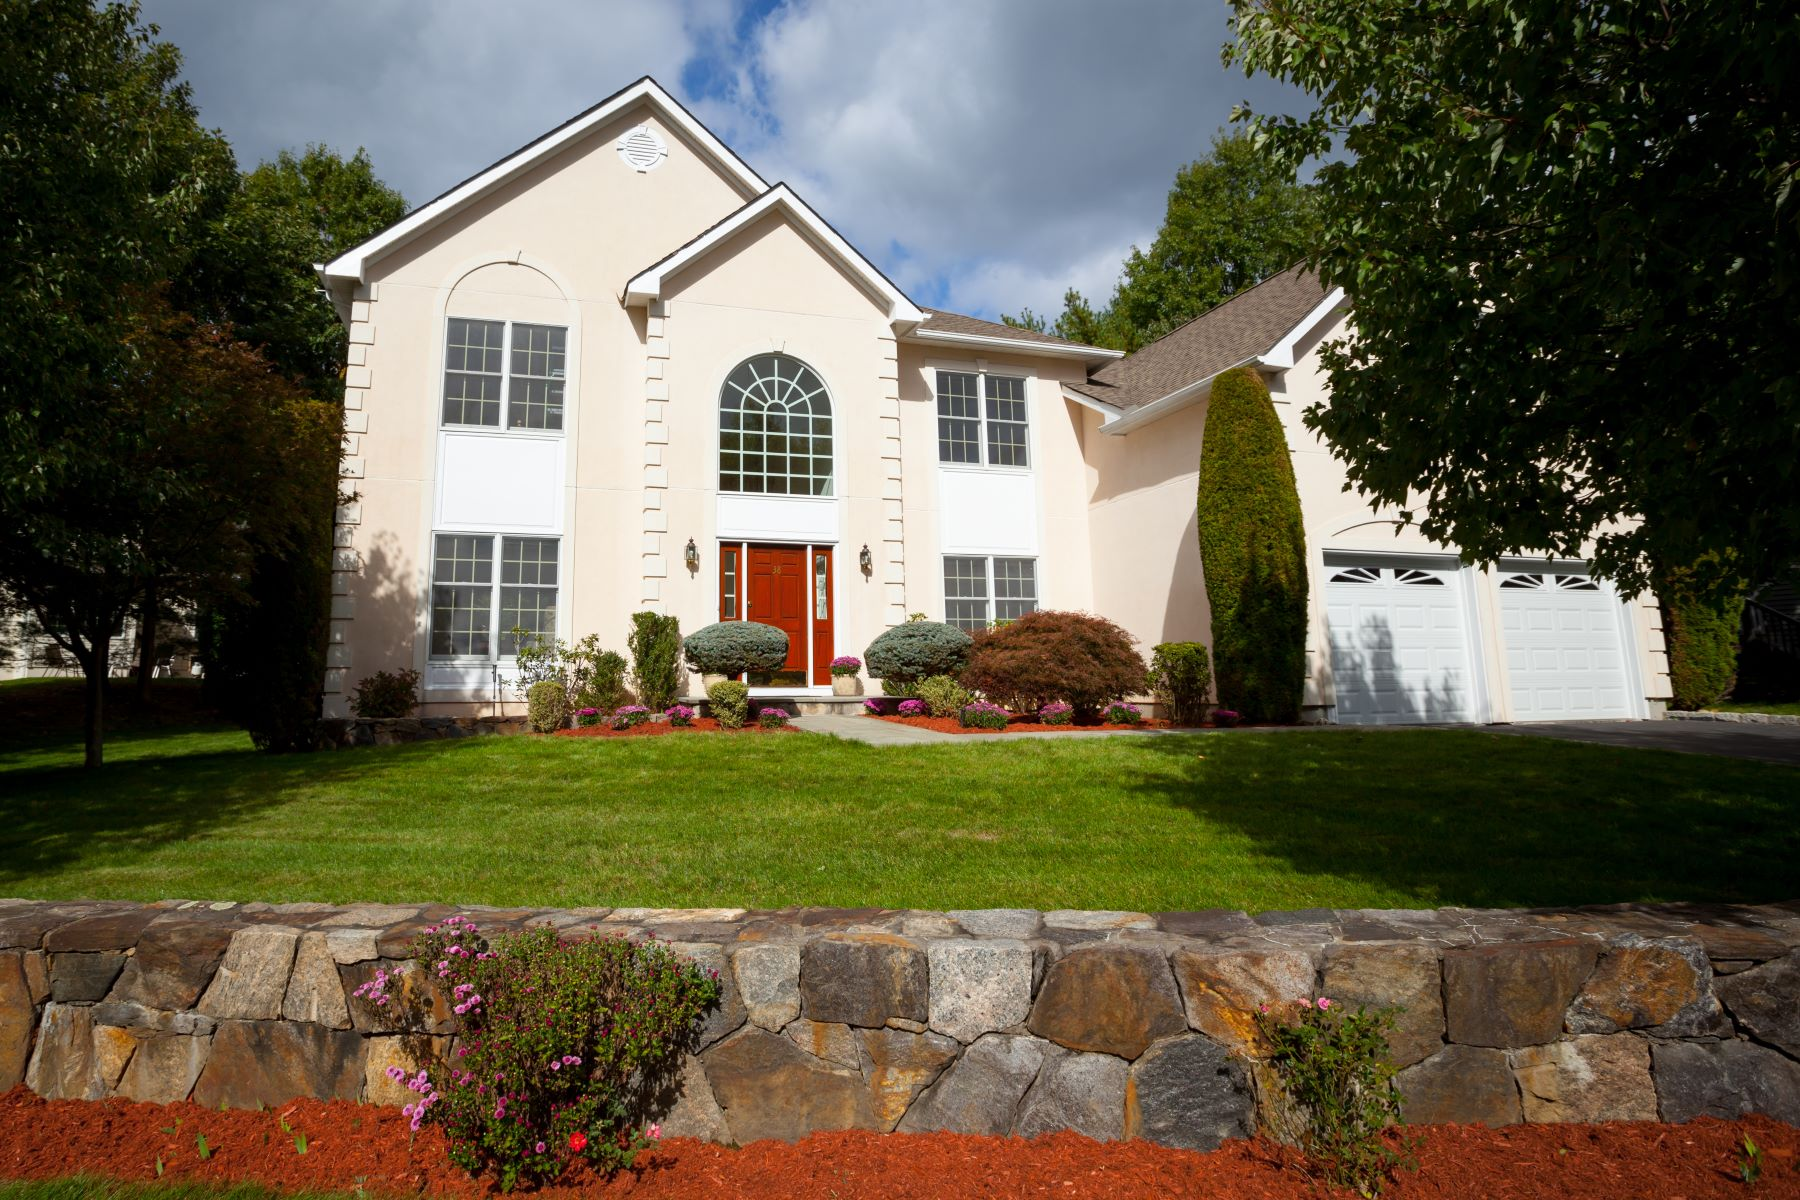 Single Family Homes for Sale at Illuminating & Cheerful Center Hall Colonial 38 Sheldon Street Ardsley, New York 10502 United States